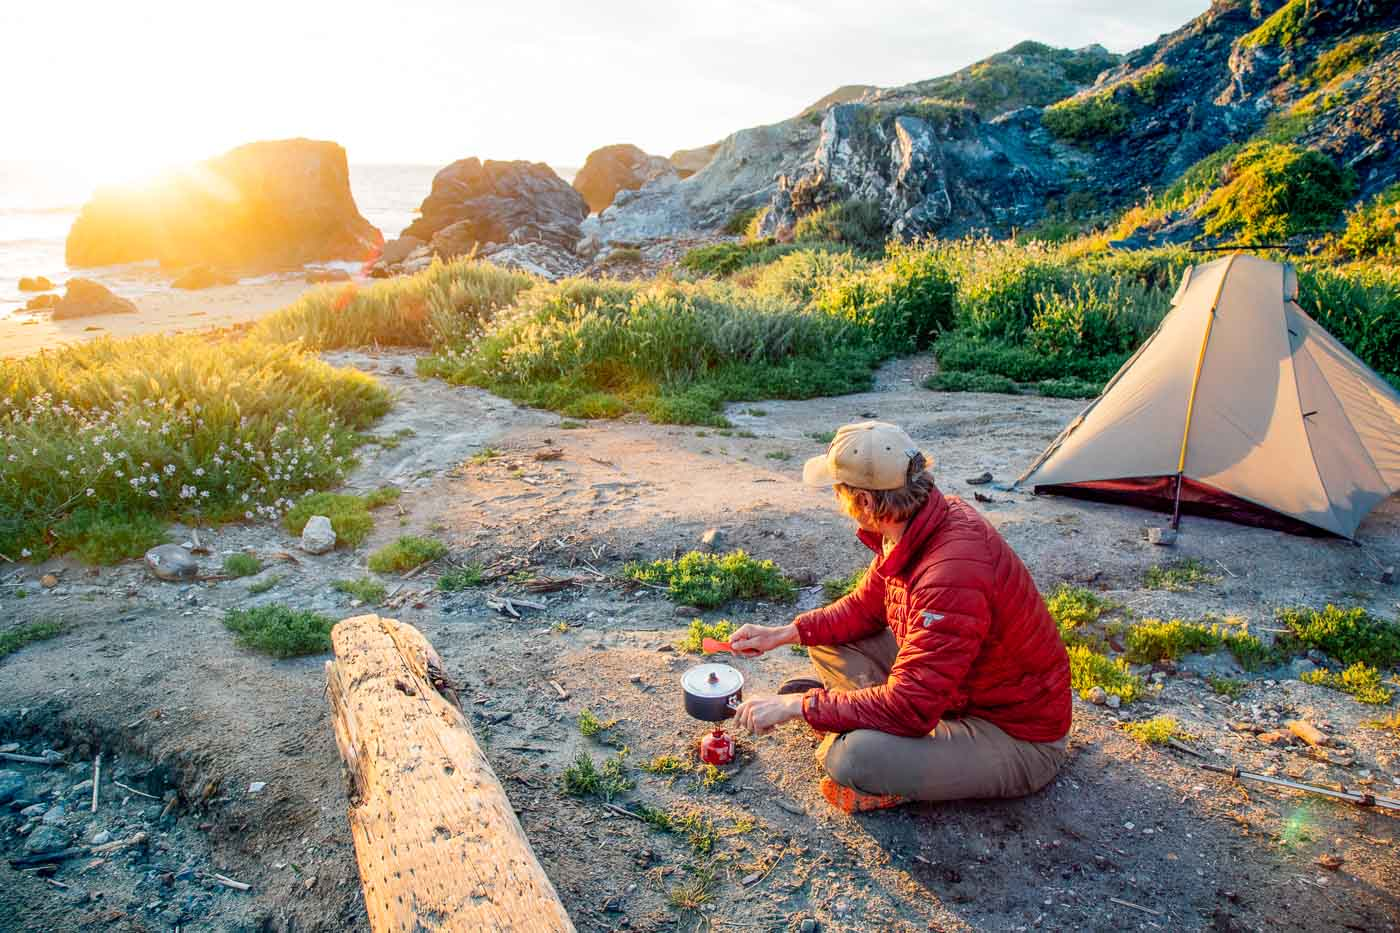 Man cooking over a backpacking stove on the beach